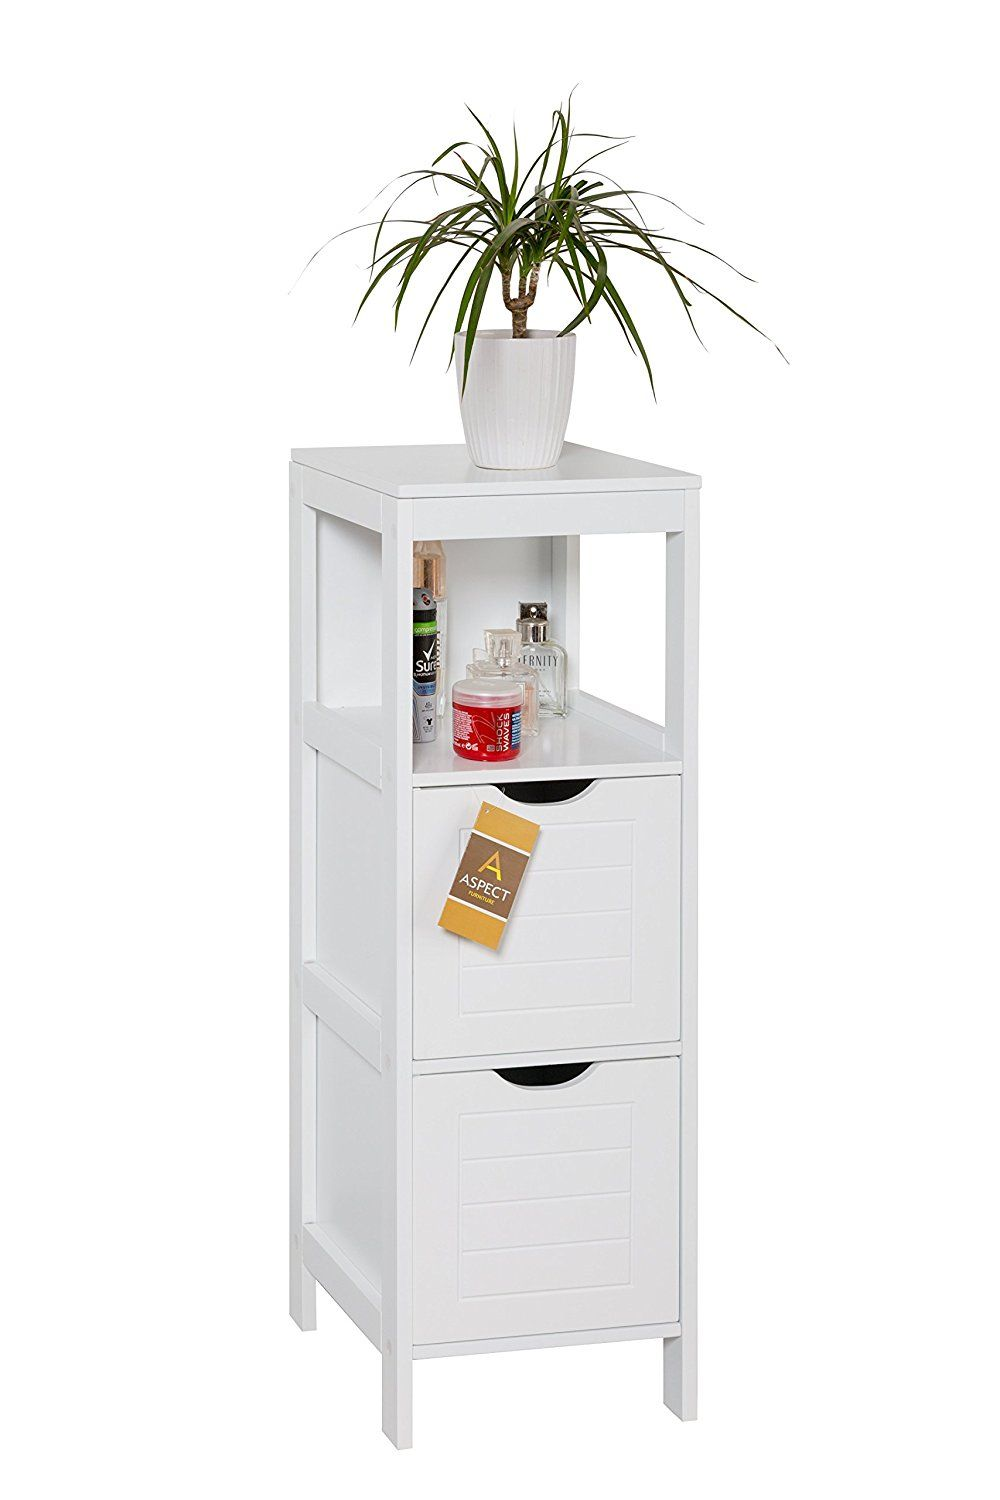 ASPECT Ashmore Free Standing Bathroom/Bedroom Storage Cabinet, Wood ...